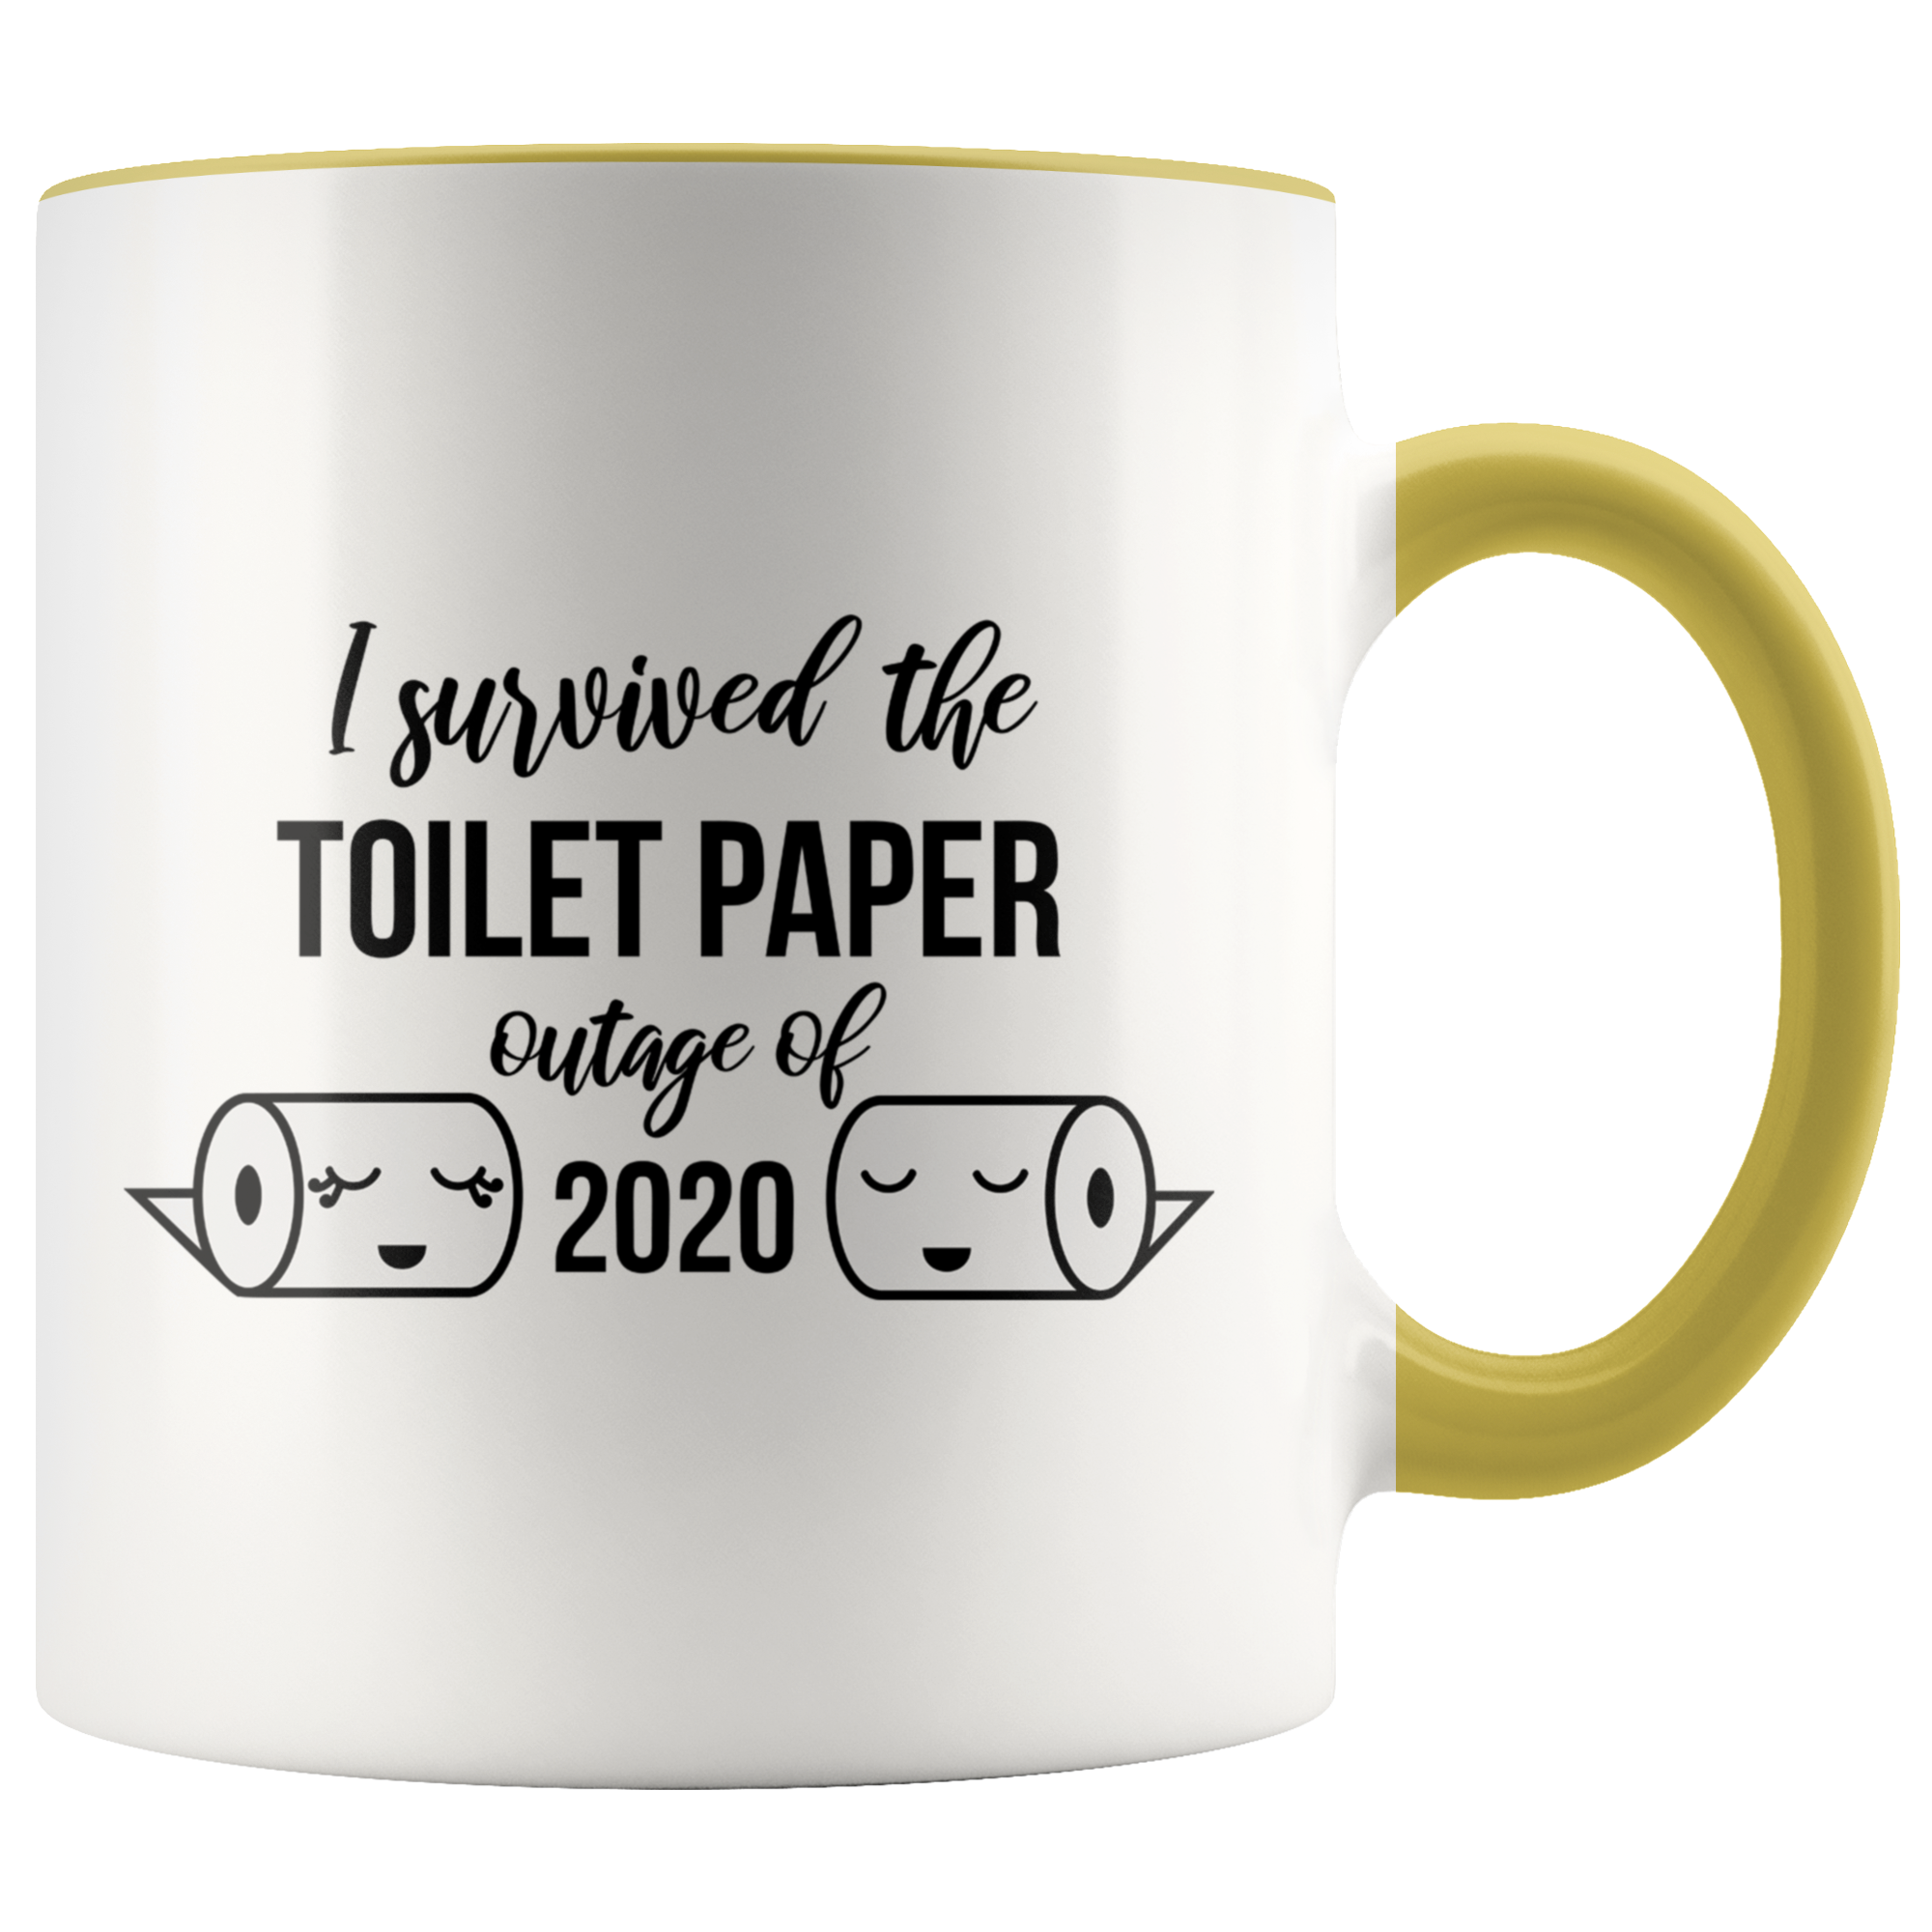 Toilet Paper Mug I Survived the Toilet Paper Outage of 2020 Mug Funny Toilet Humor TP Gag Gift for C